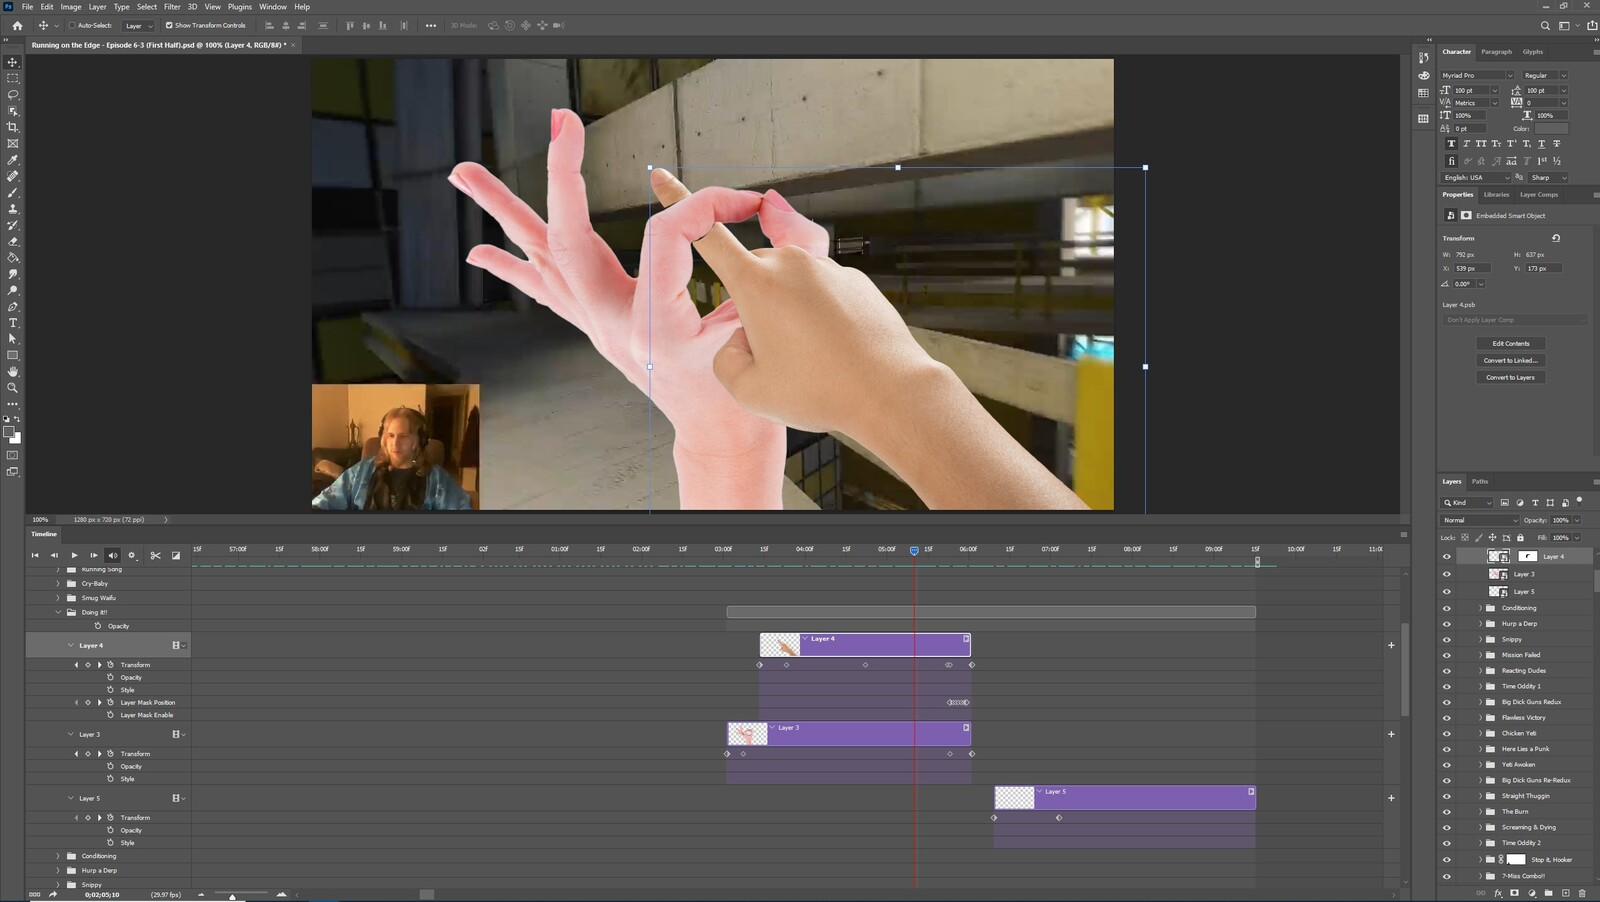 """The """"Doing It"""" visual effect within Photoshop video editor"""